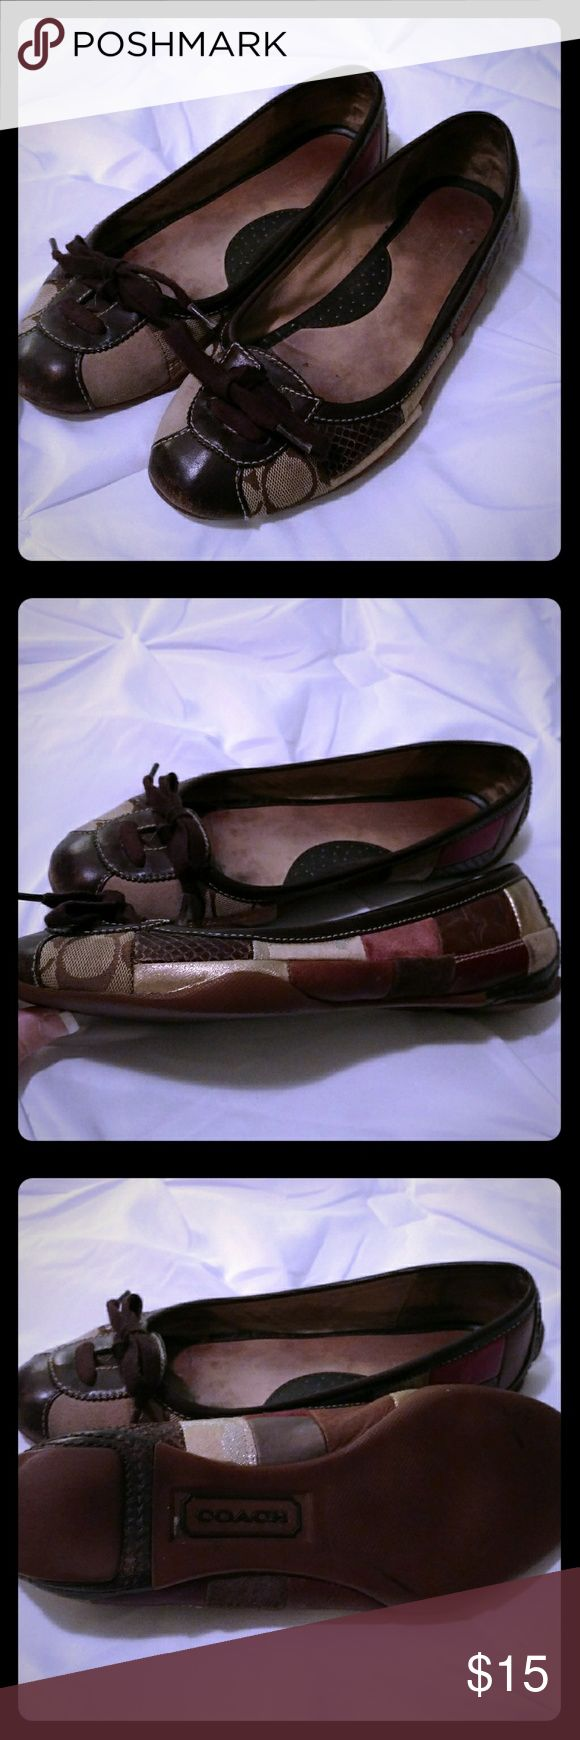 COACH Flats! Loved Coach flats. Comfortable. Some wear as is shown in pictures. Still lots of life left. Coach Shoes Flats & Loafers